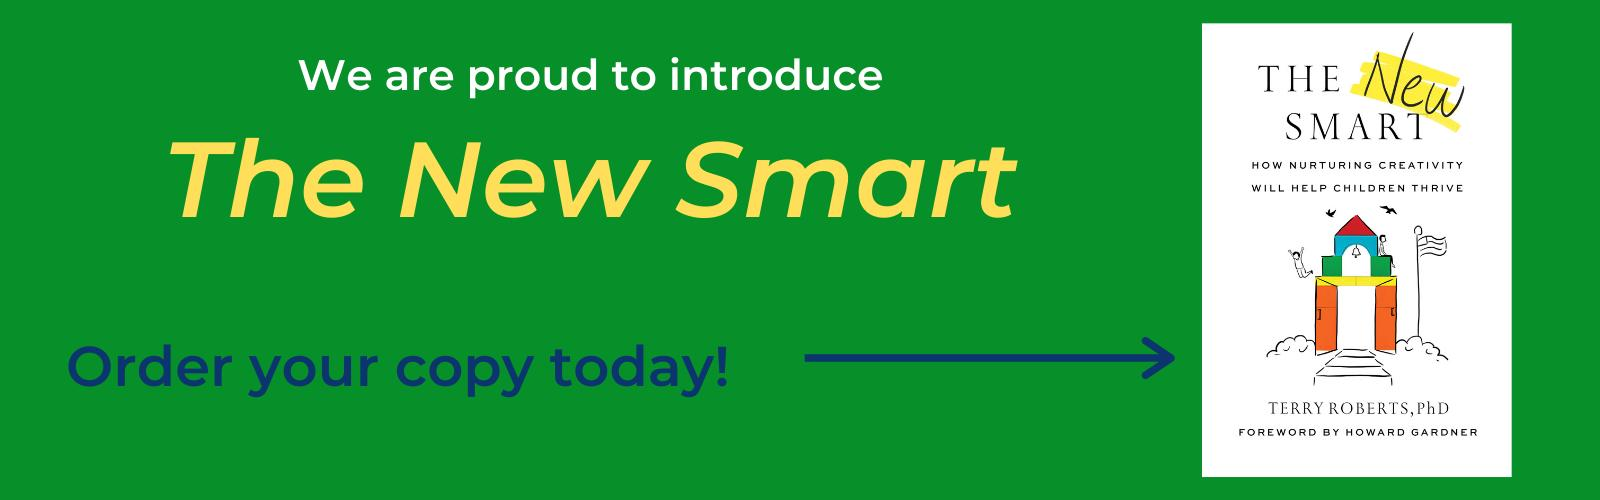 Graphic announcing publication of new book The New Smart